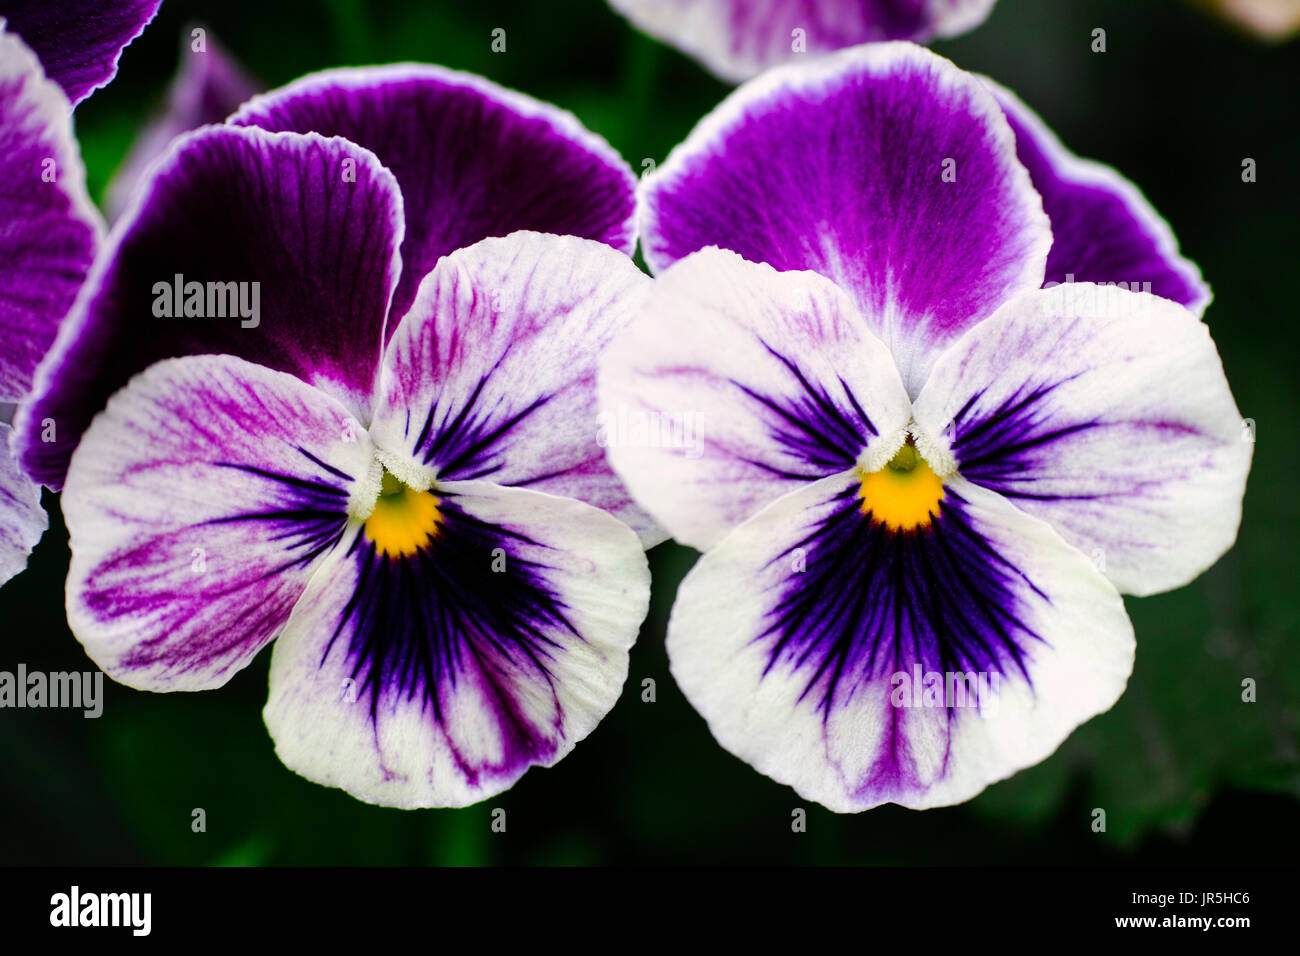 Two violet pansies in the garden. Close-up. - Stock Image